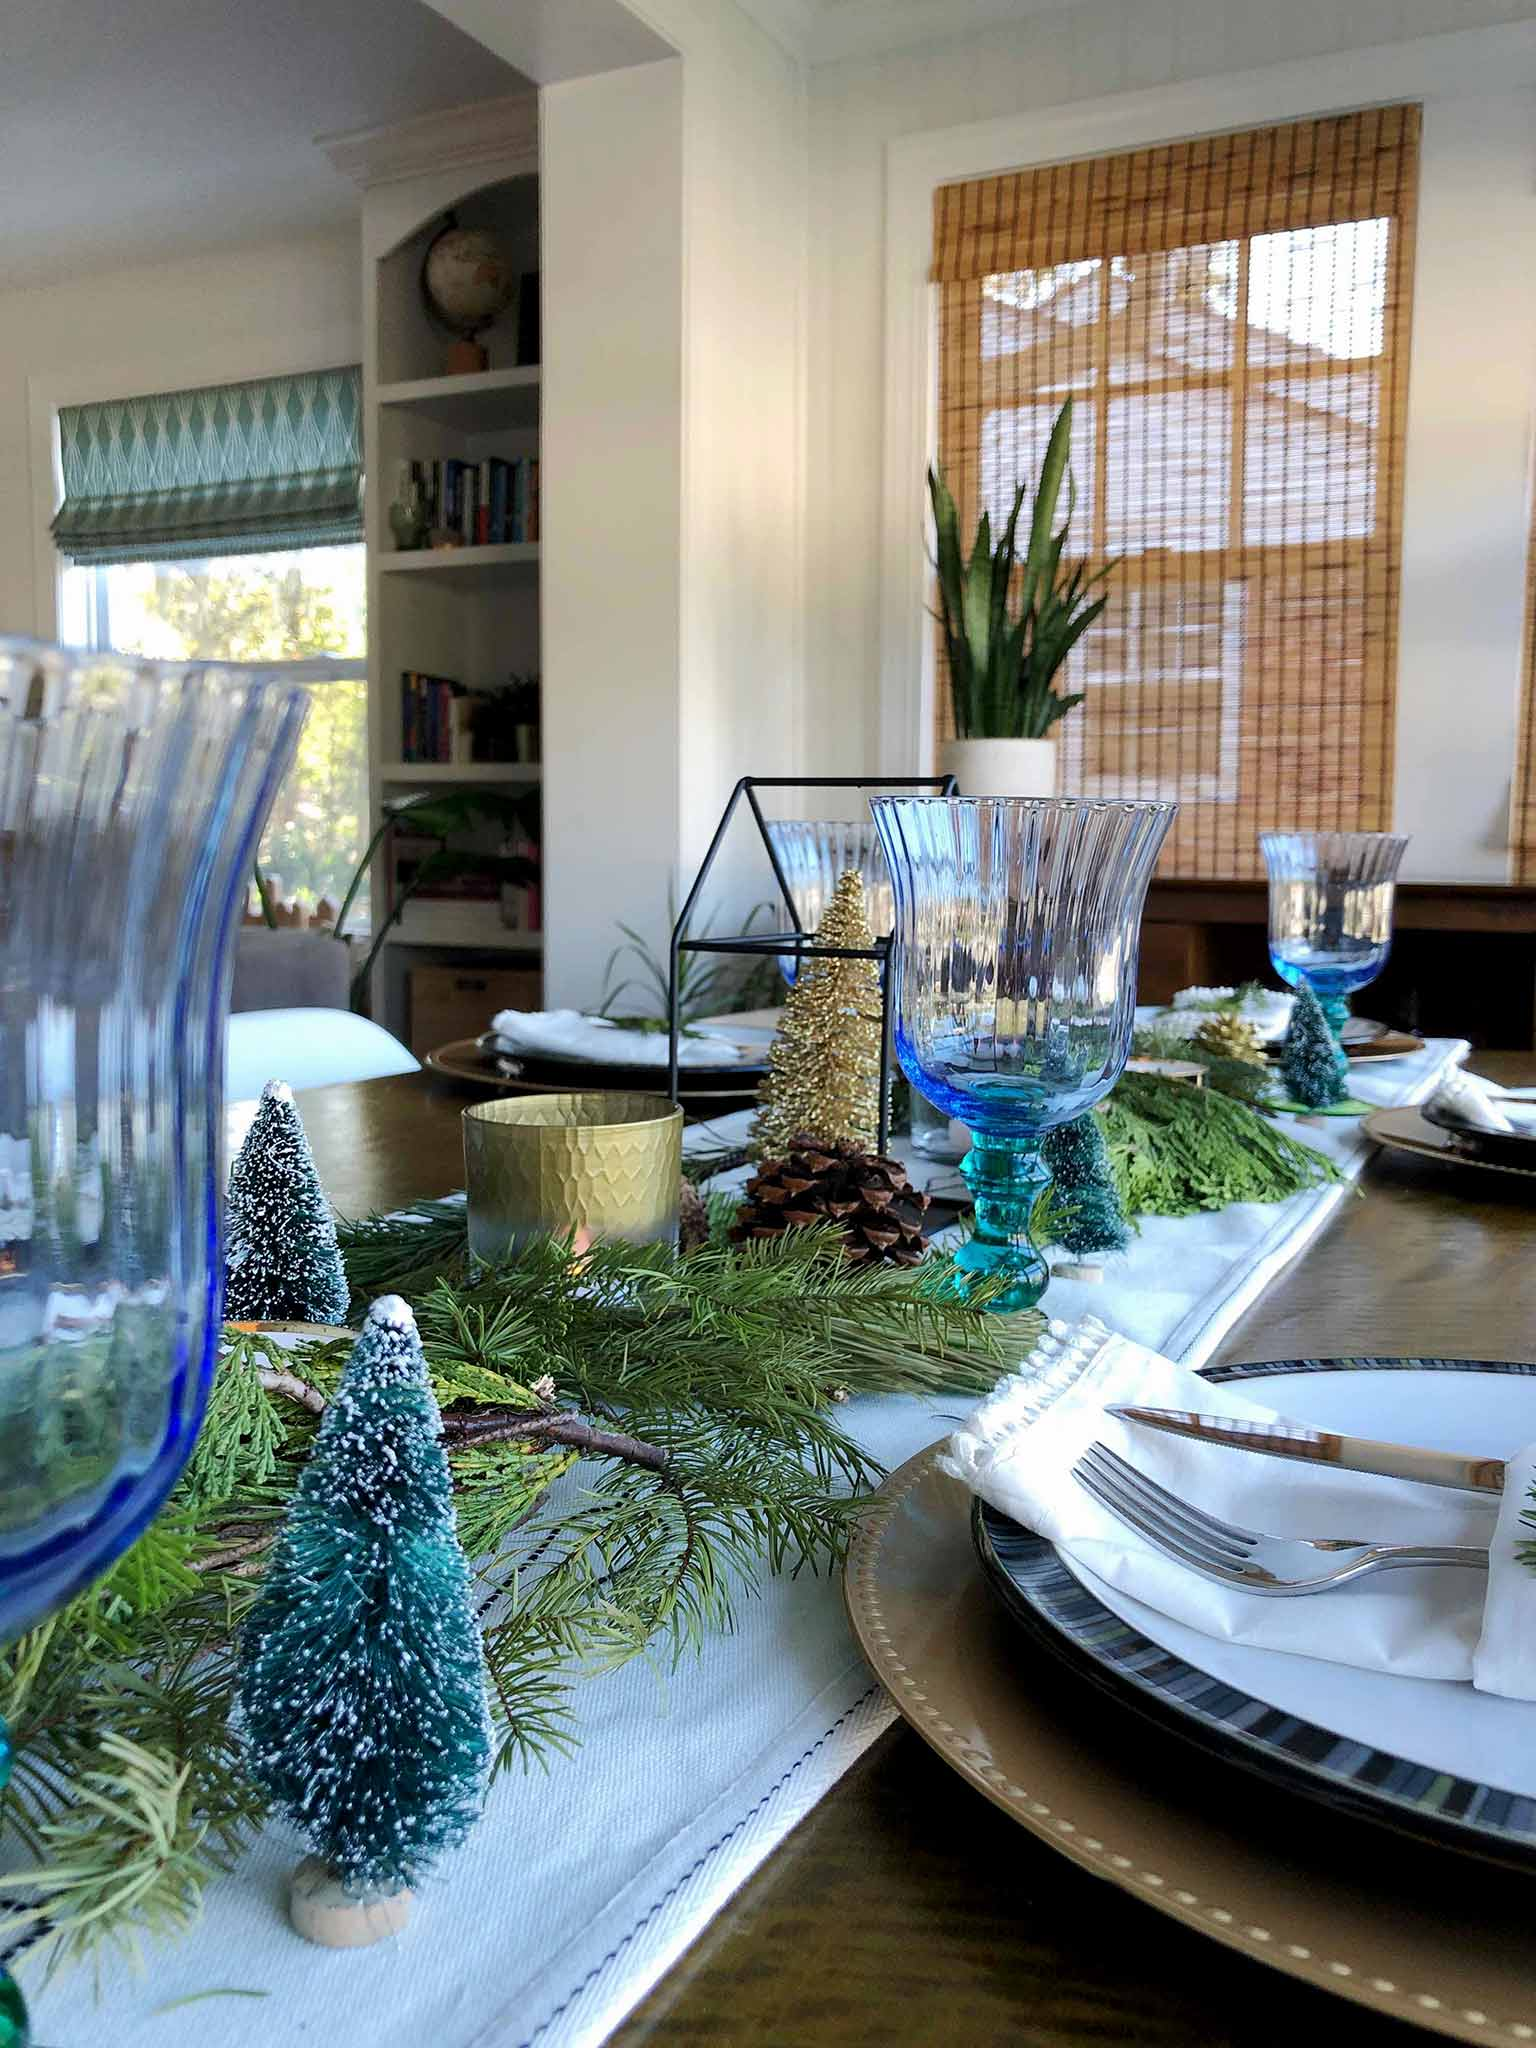 Bottle brush trees | How to Create a Beautiful Tablescape on a Budget | That Homebird Life Blog #christmasdecor #tablescape